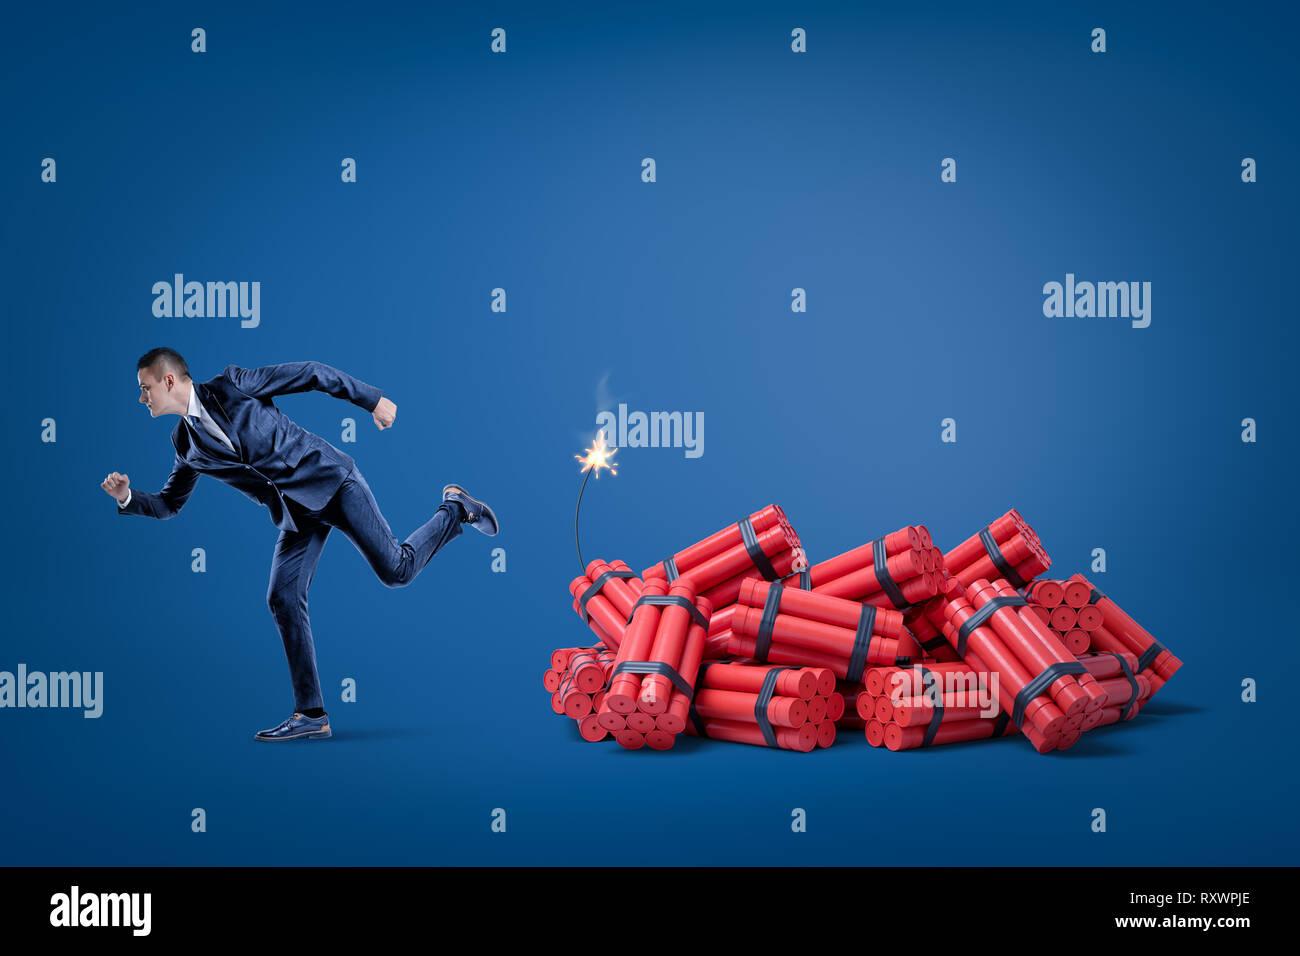 Businessman running away from pack of red tnt dynamite sticks with lighted fuse on blue background - Stock Image